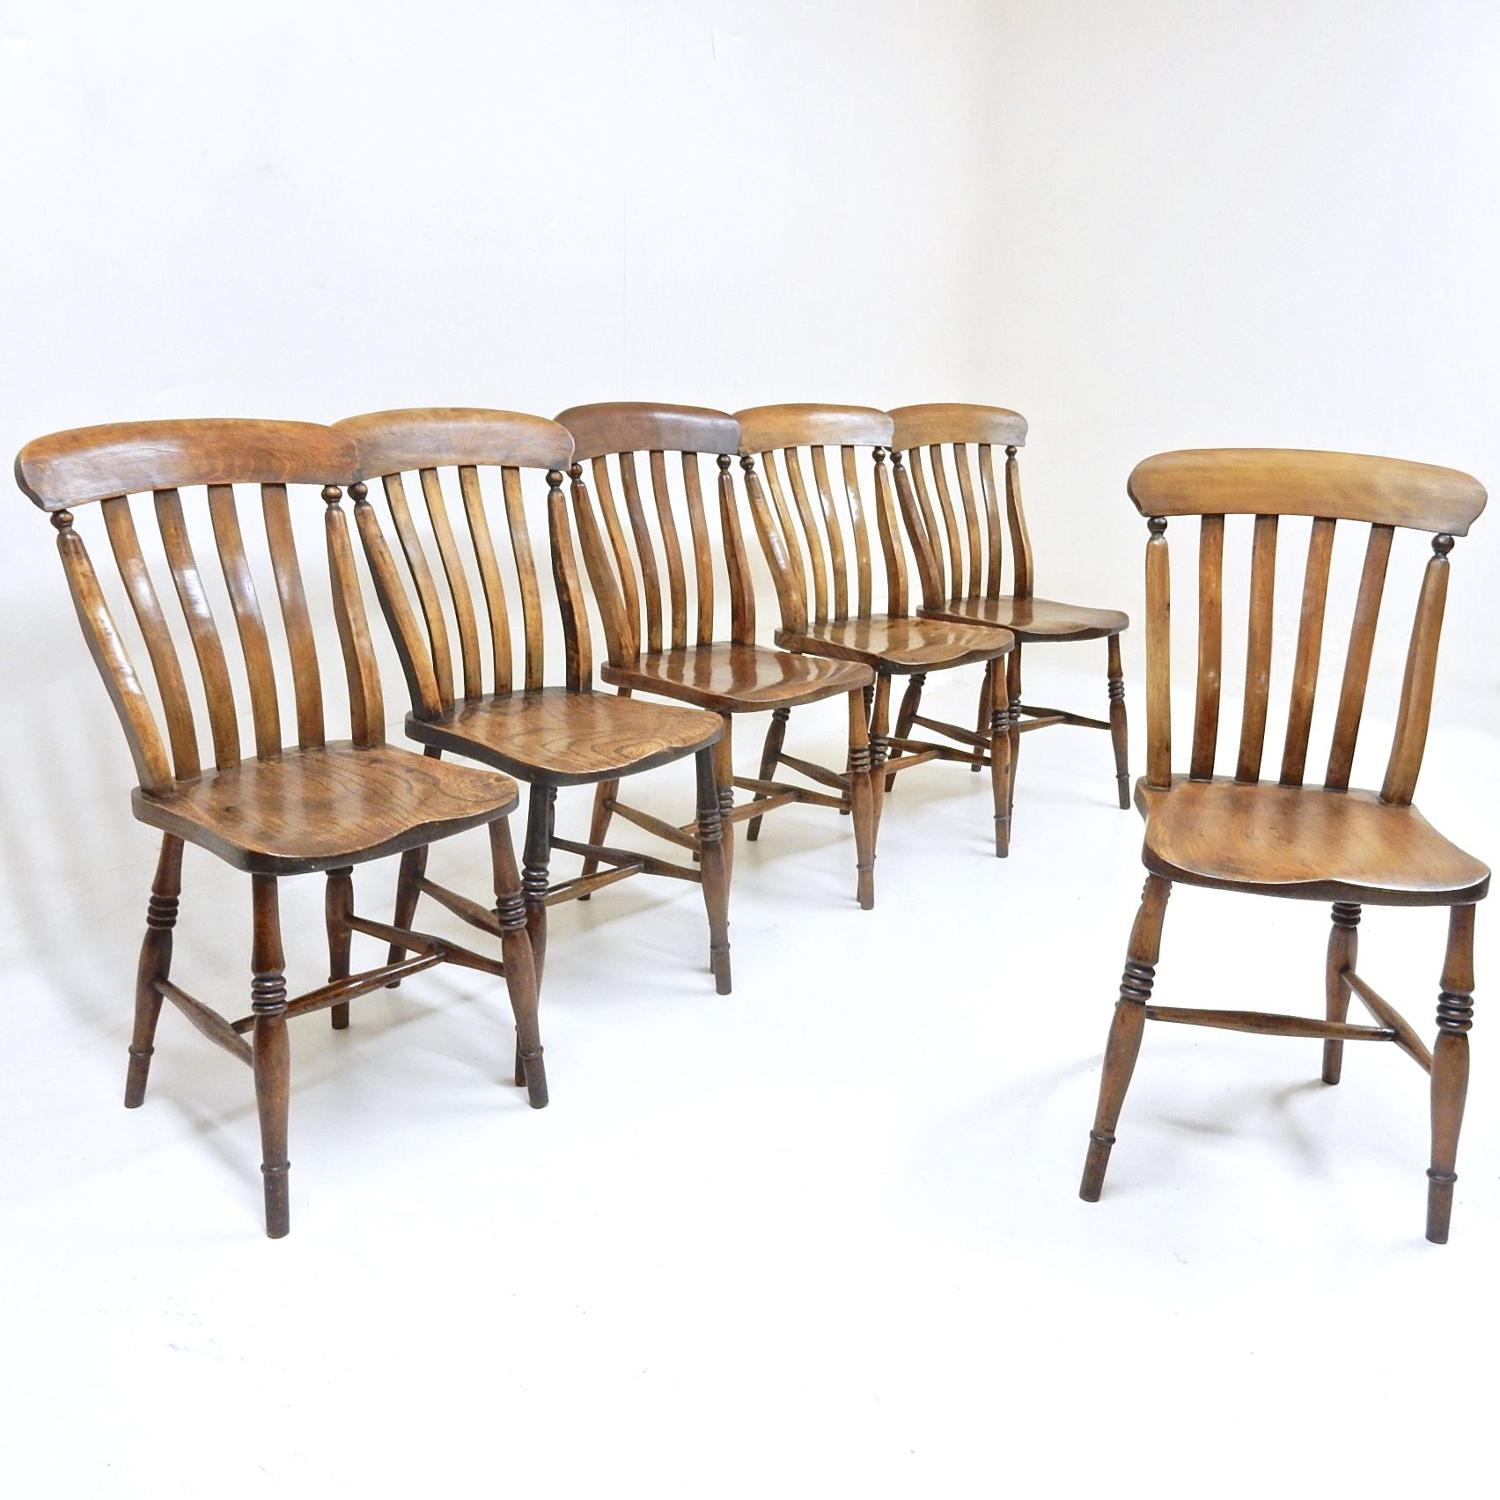 Country Kitchen Chairs Antique Country Kitchen Chairs In Tables